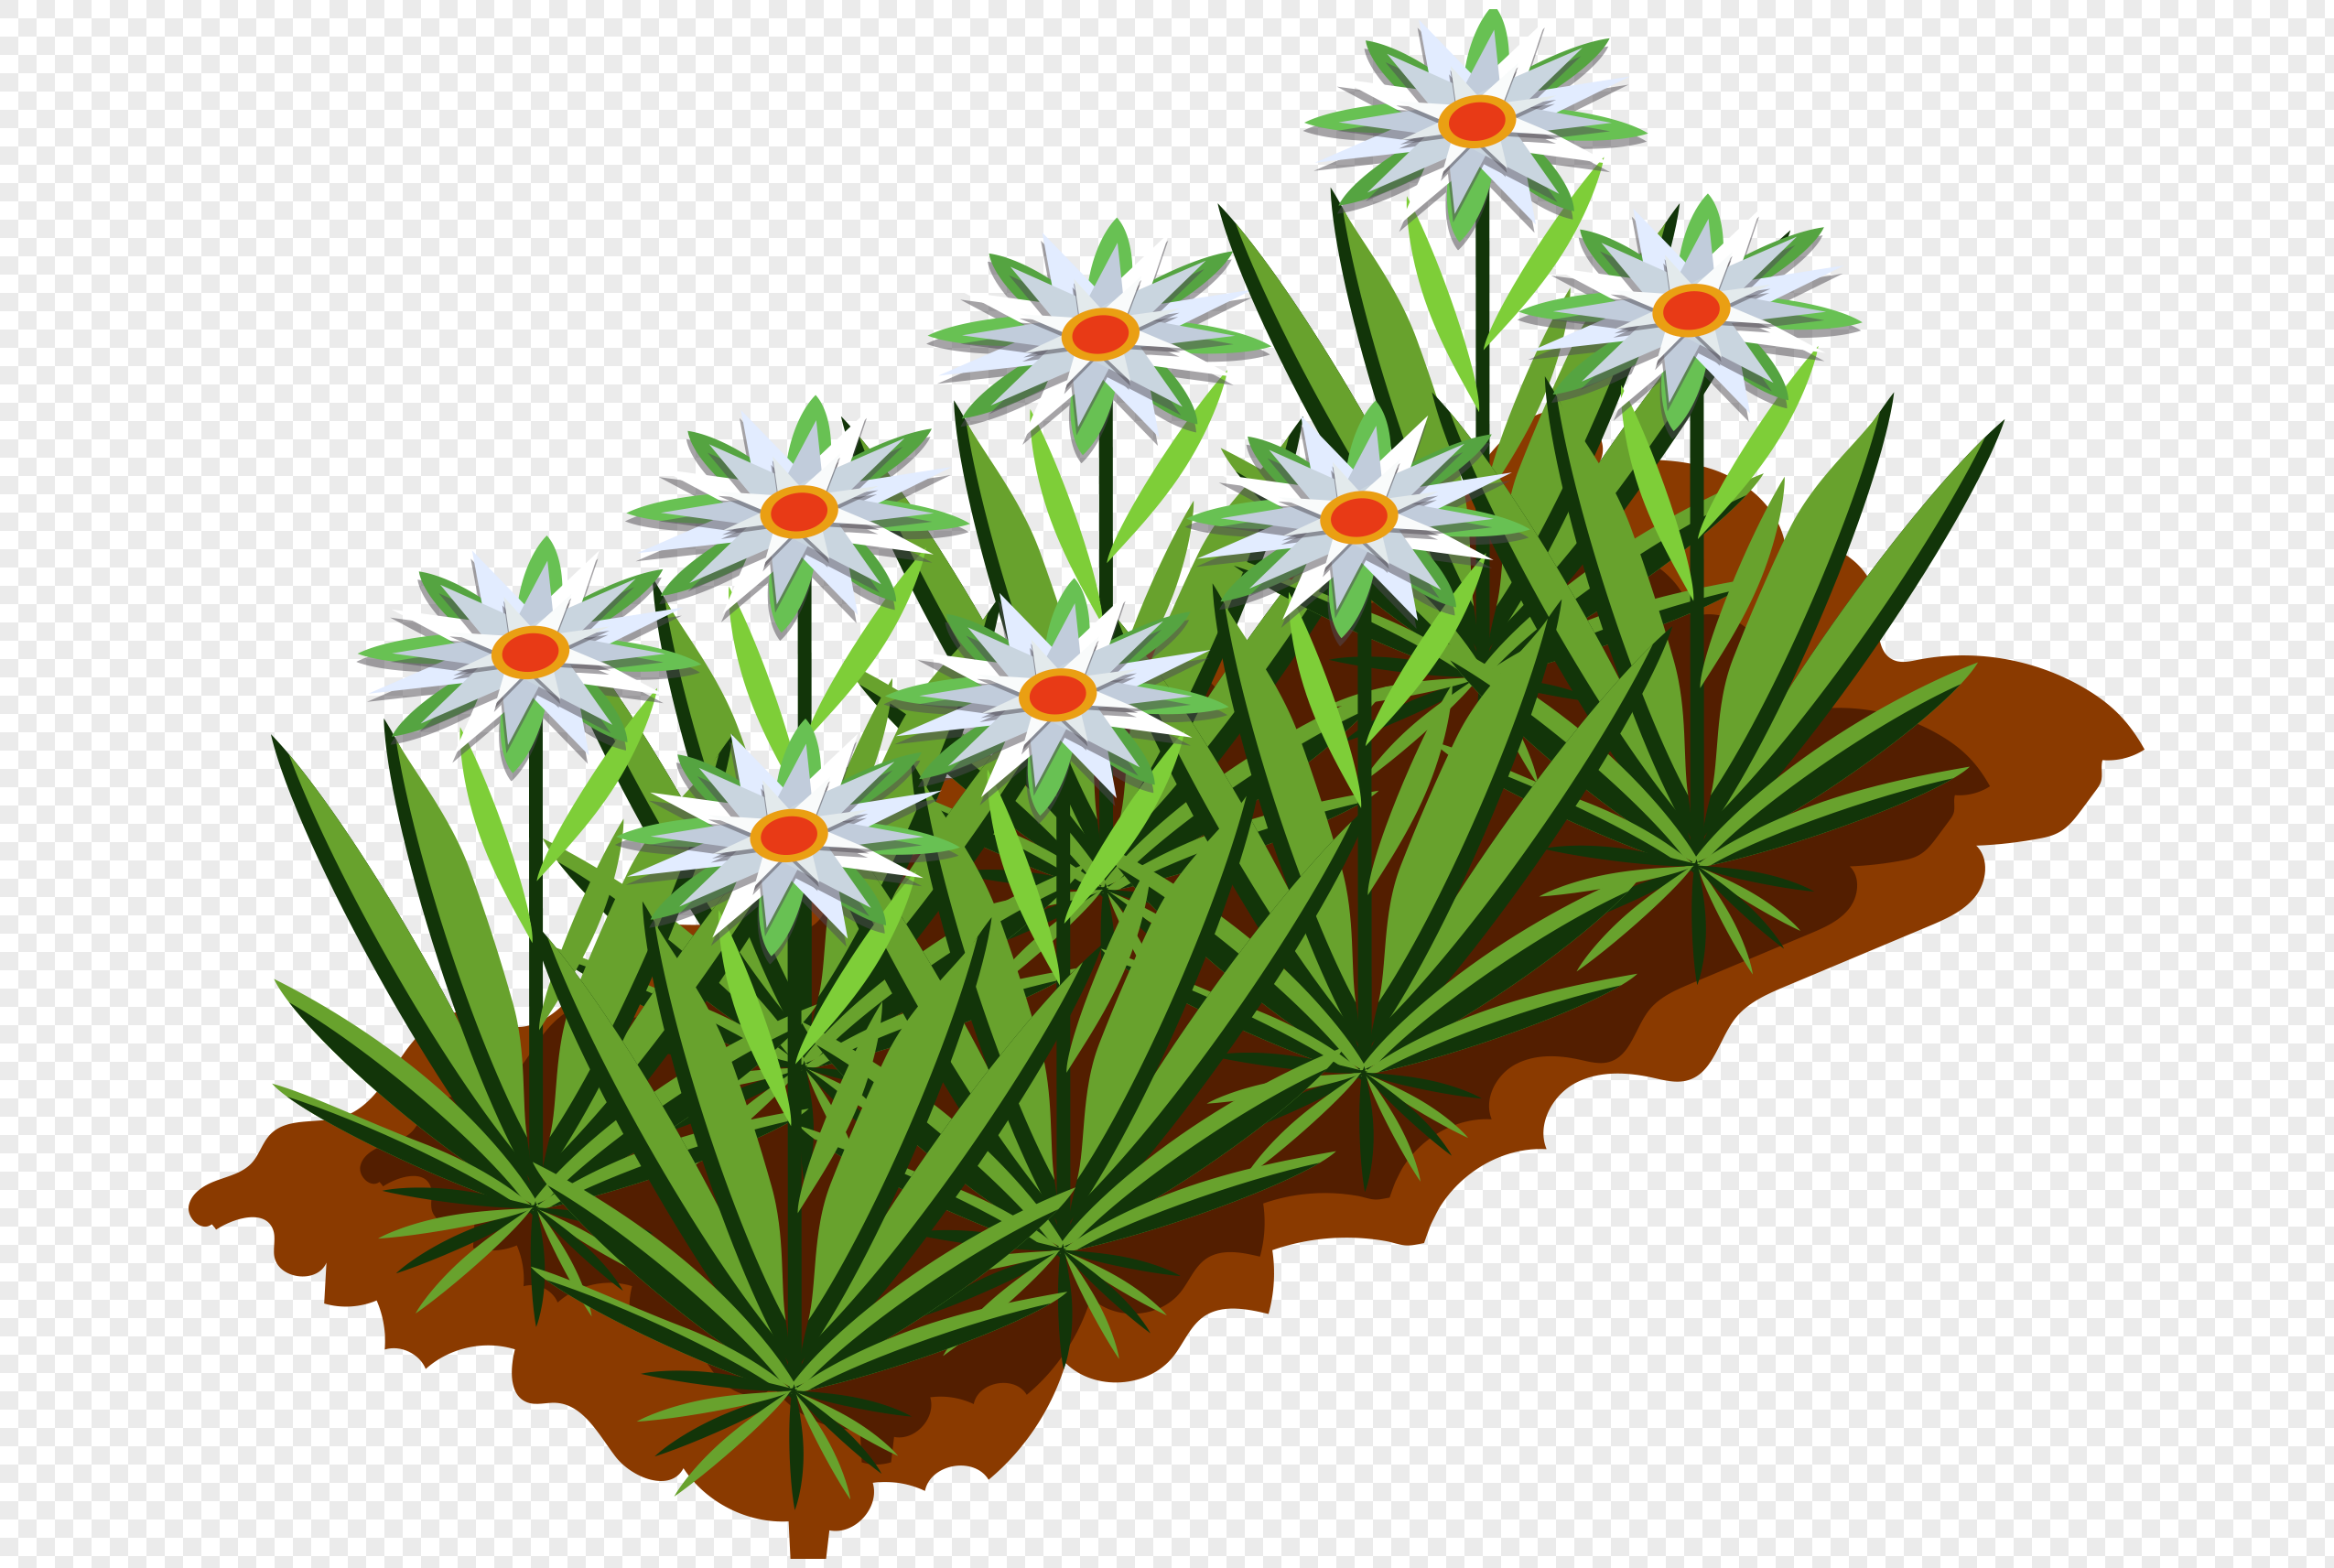 Green belts and beautiful flowers png imagepicture free download green belts and beautiful flowers izmirmasajfo